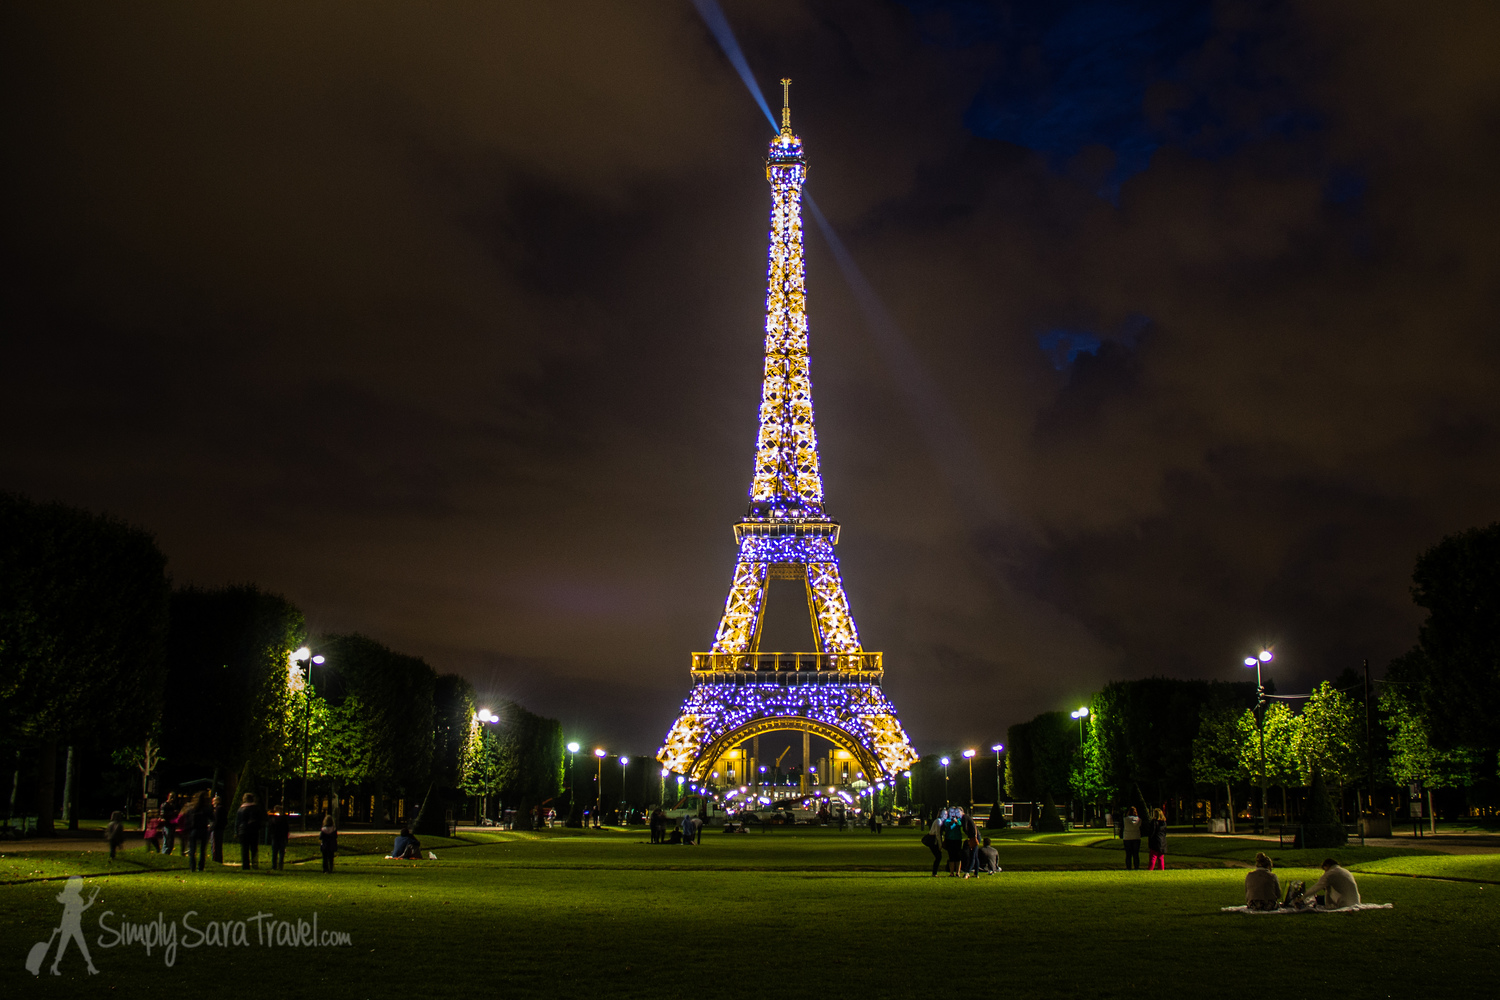 Top things to do on your next trip to Paris